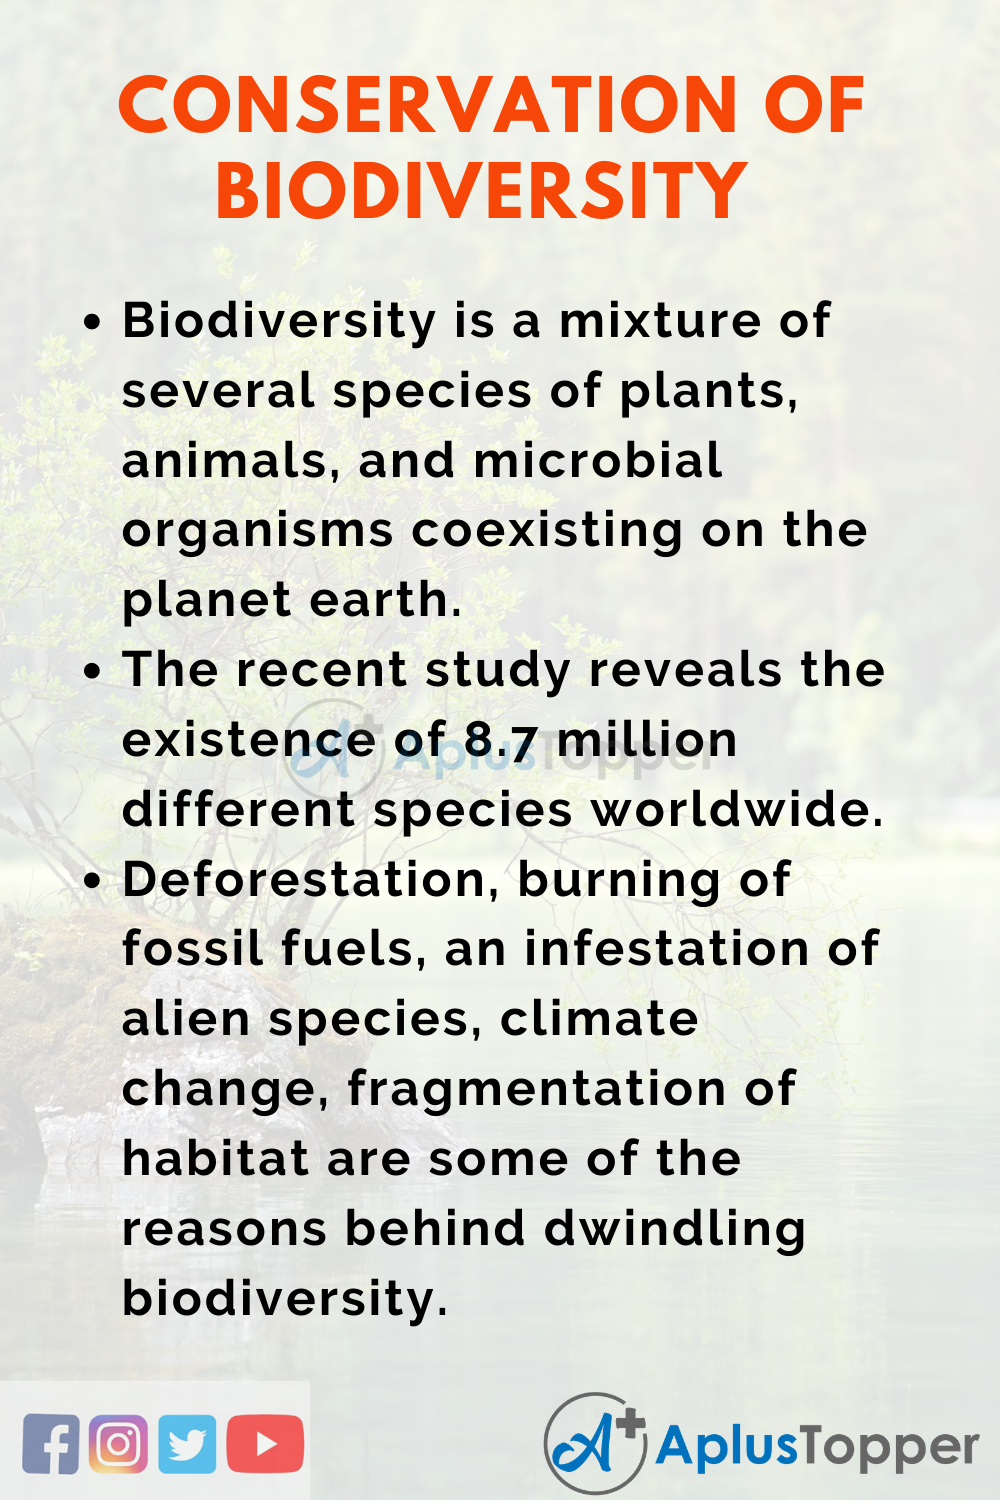 Essay about Conservation of Biodiversity